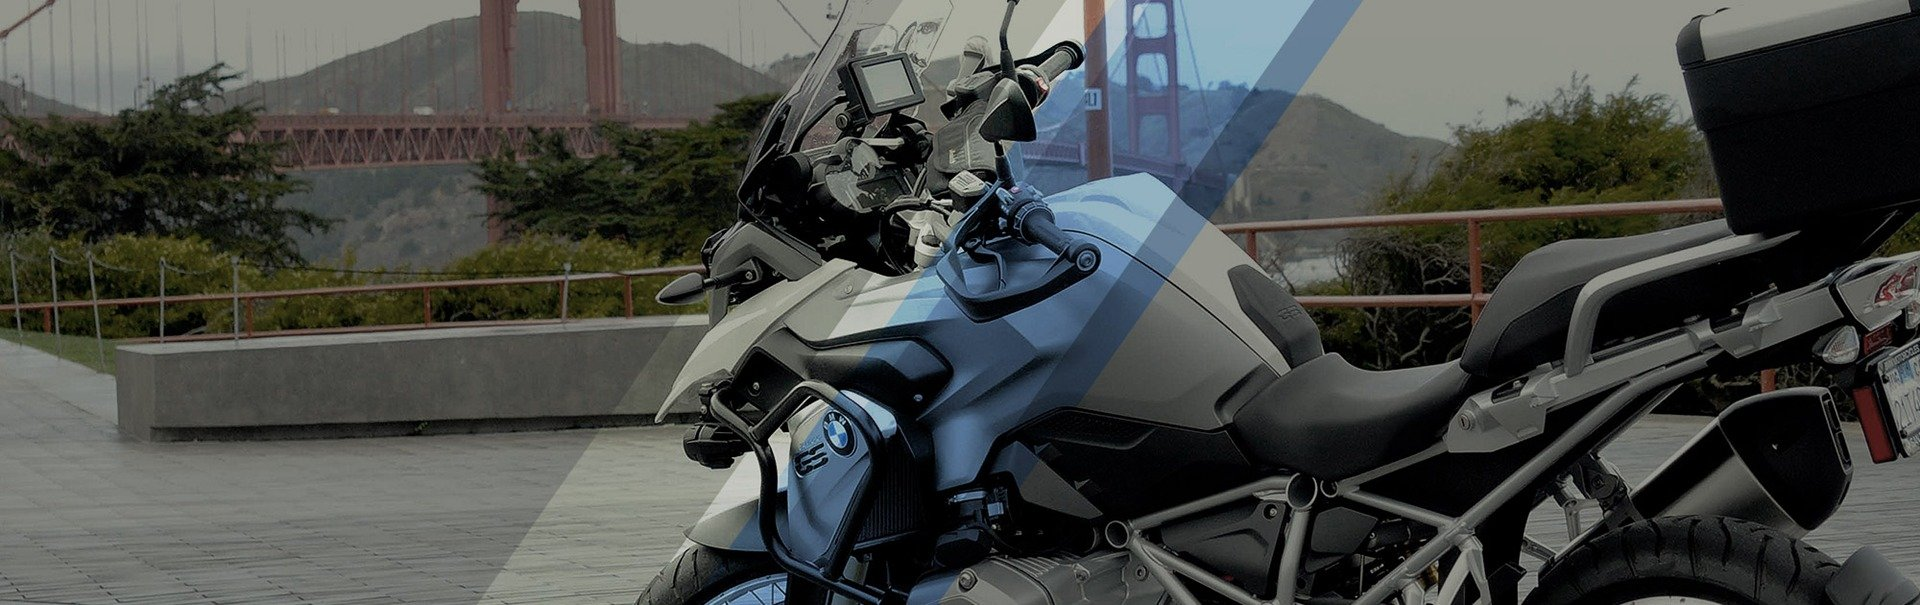 Motorcycle Rentals in San Francisco